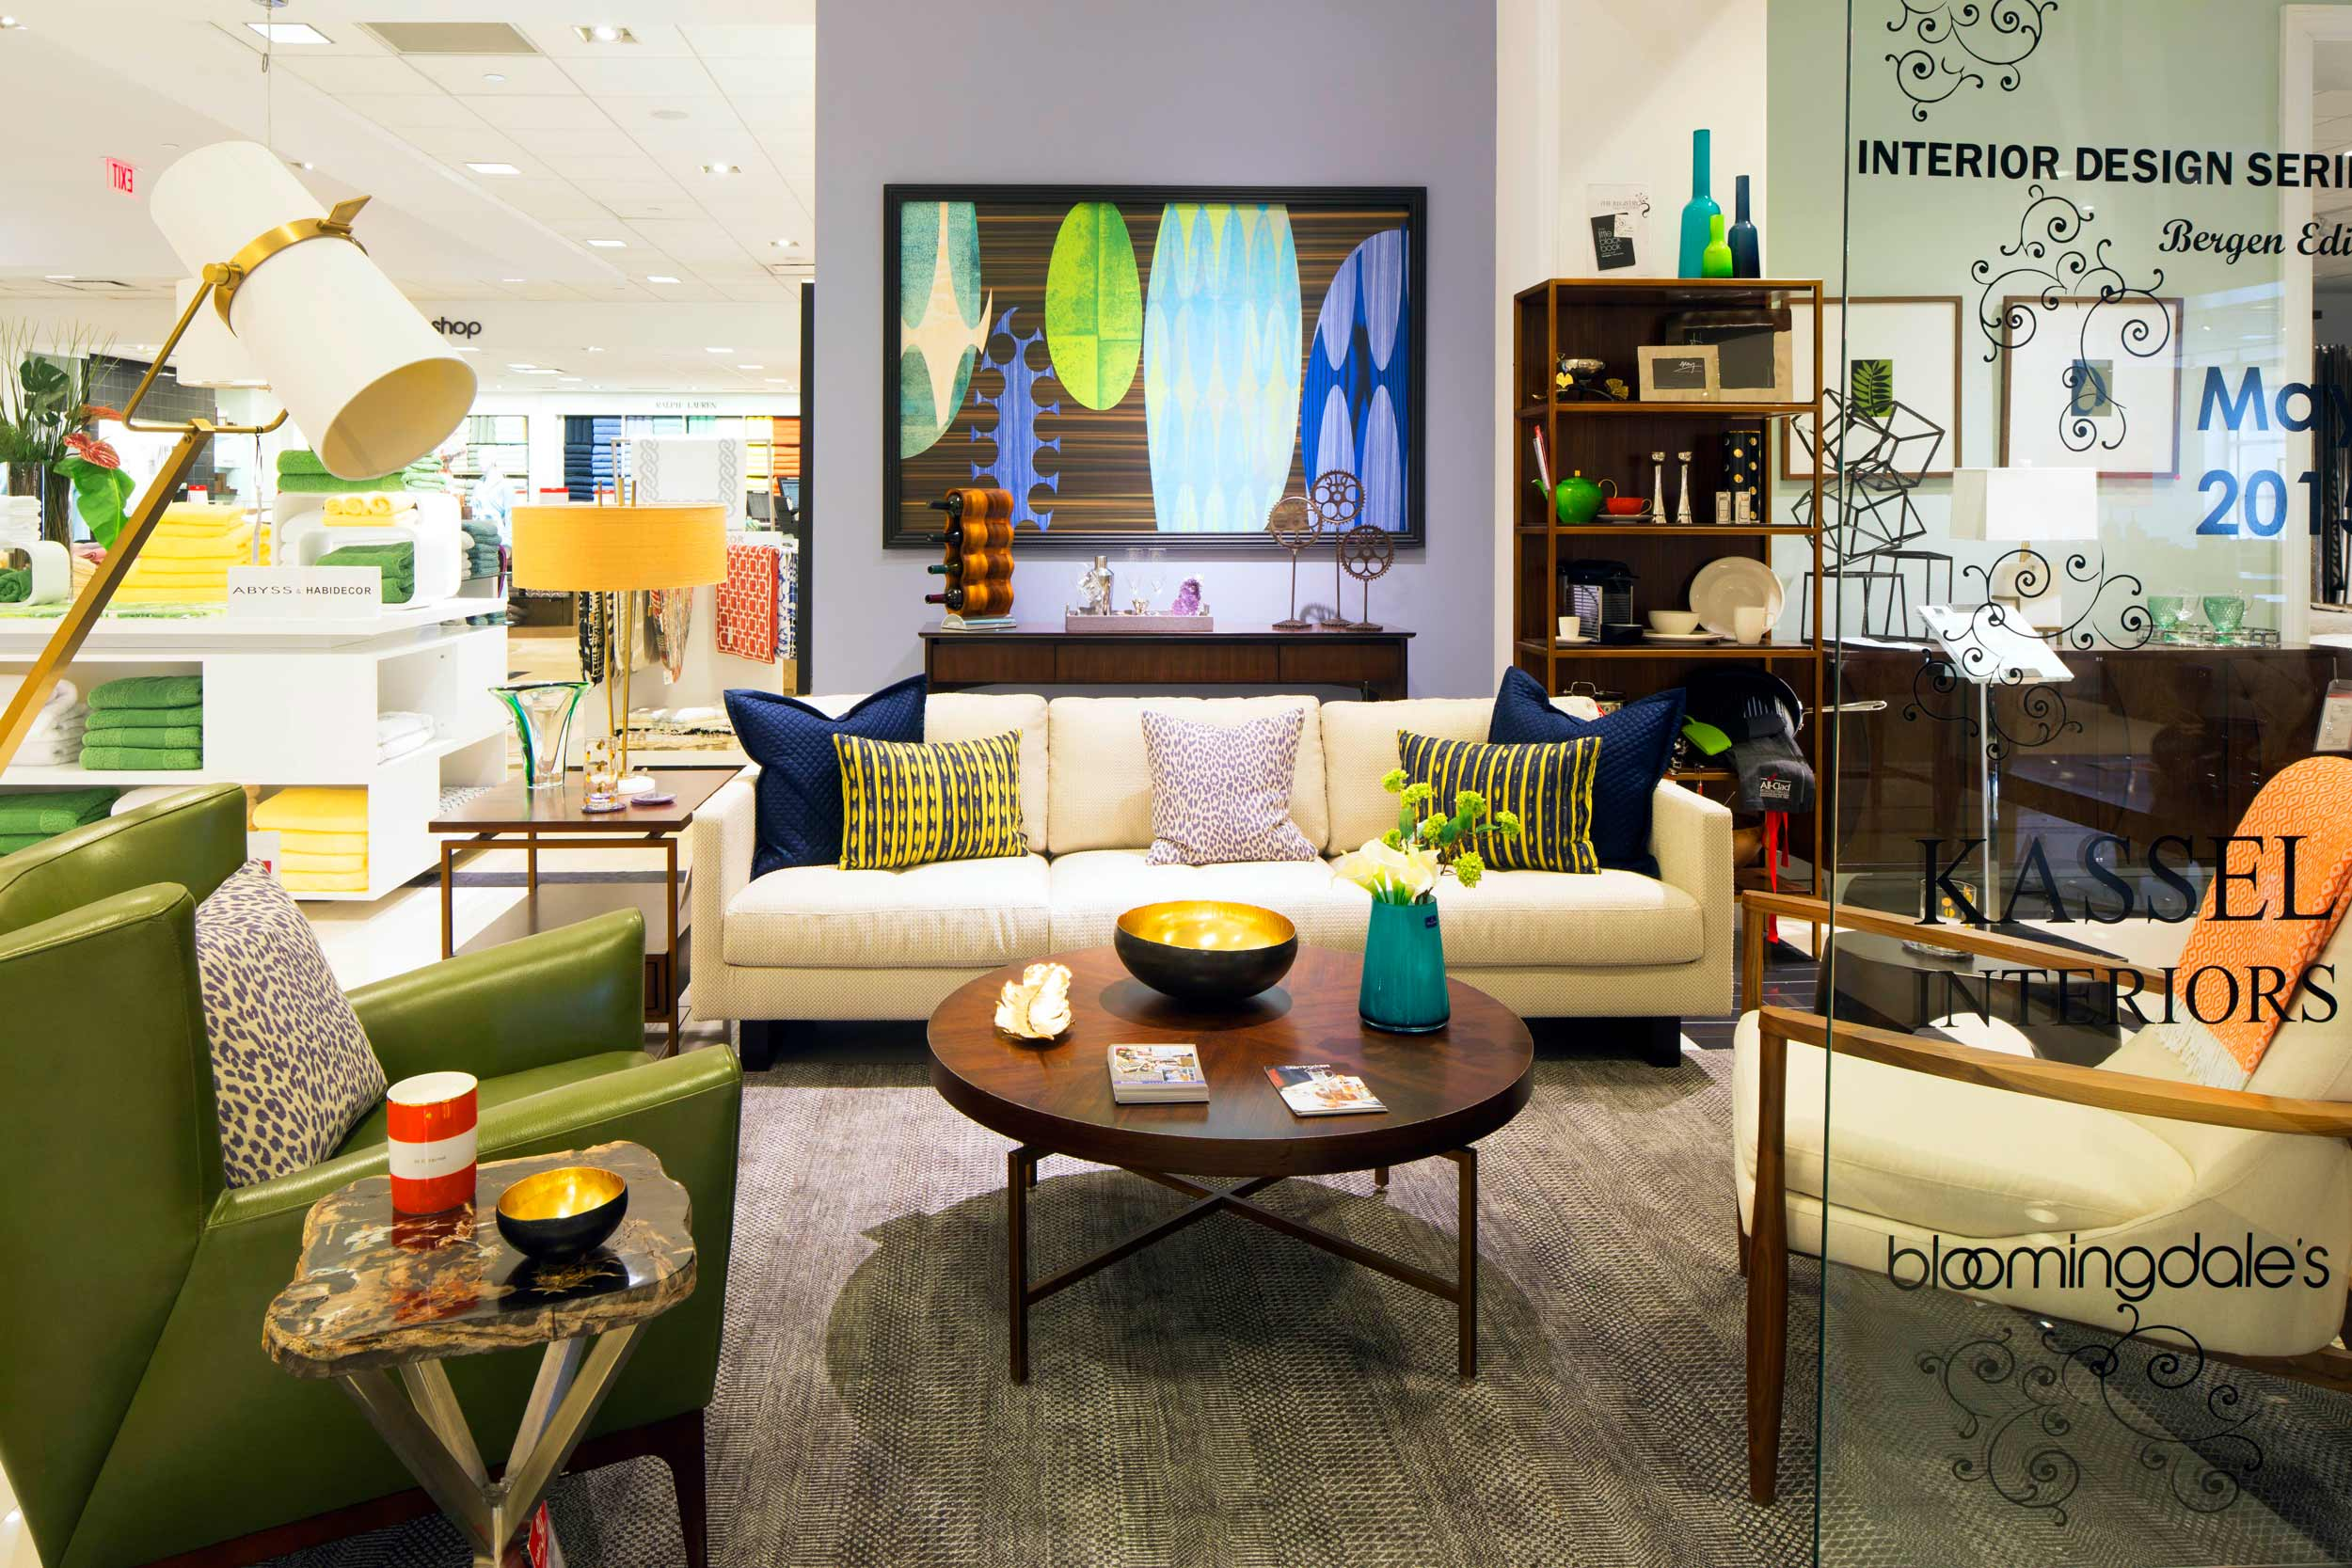 Kassel Interiors: Anita Kassel Bloomingdales Project